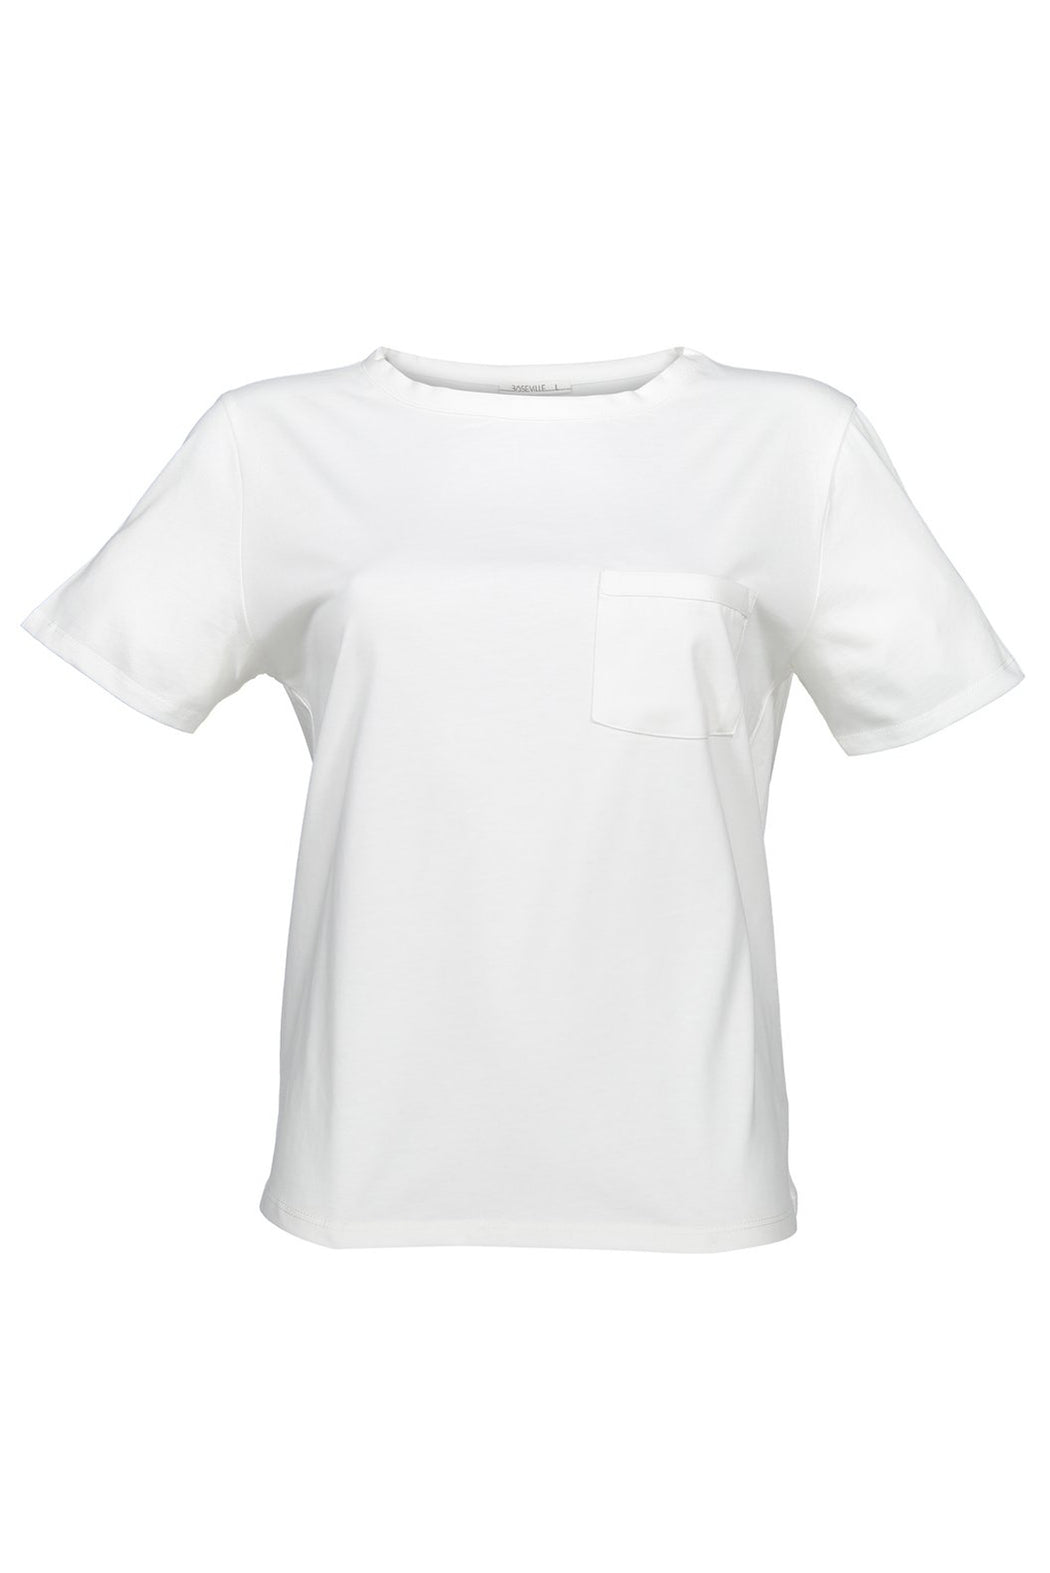 Basic T-shirt with Pocket | White | Tops | Baseville | [product_tag] - Fair Bazaar Ethical Living